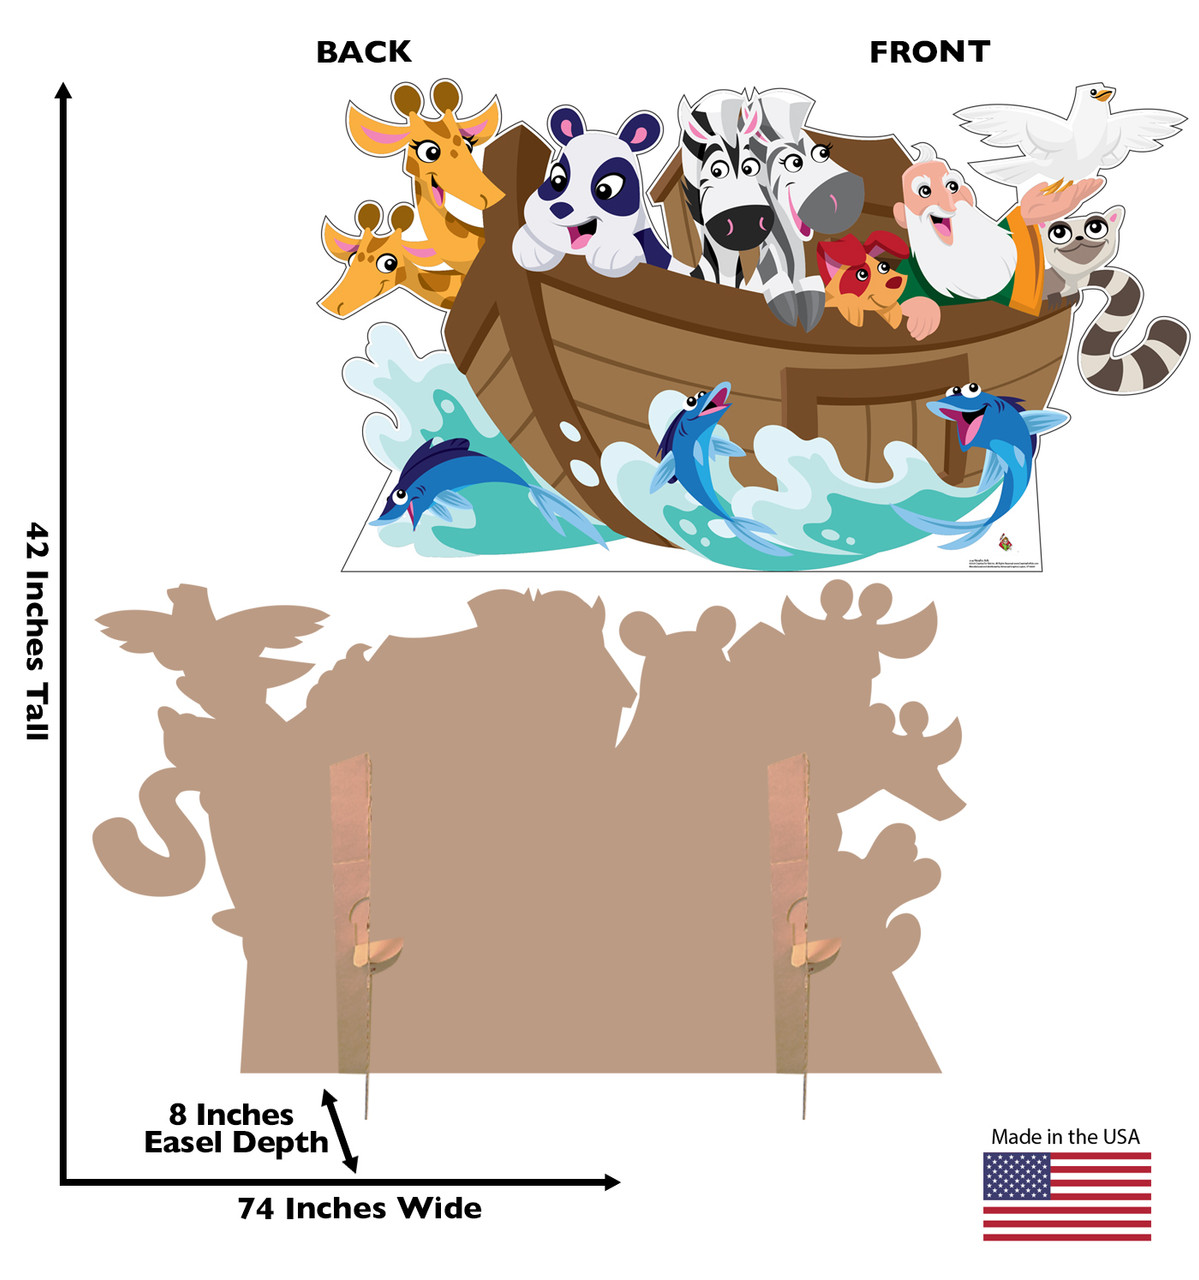 Life-size cardboard standee Noahs Ark with front and back dimensions.